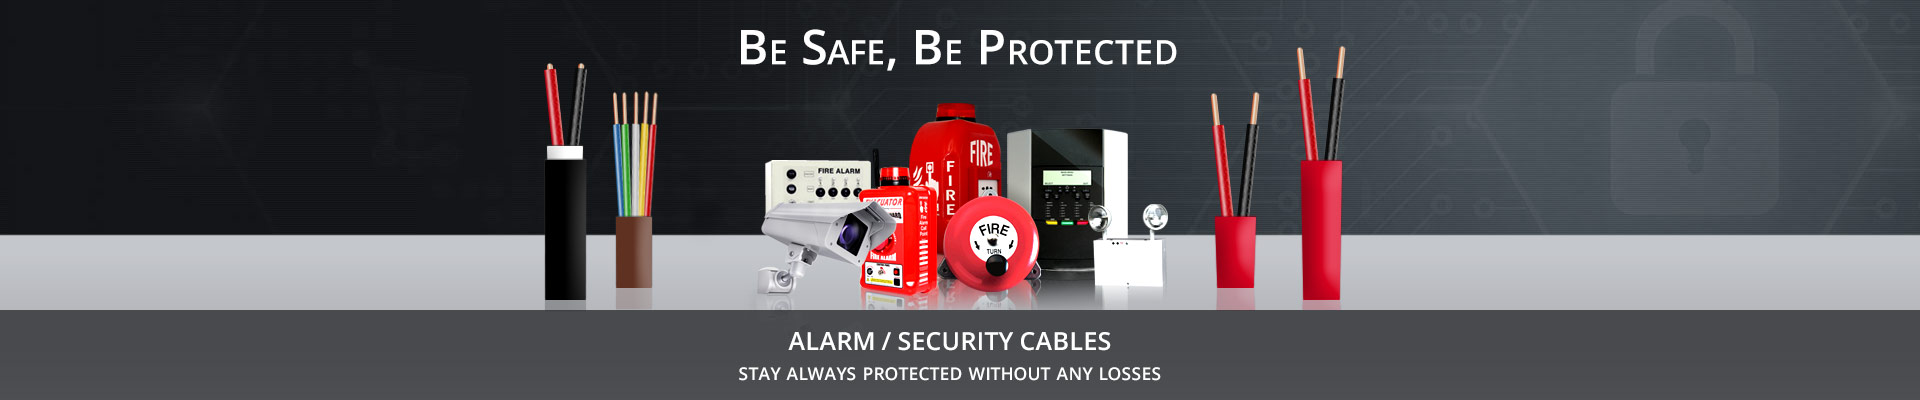 Alarm/Security Cables